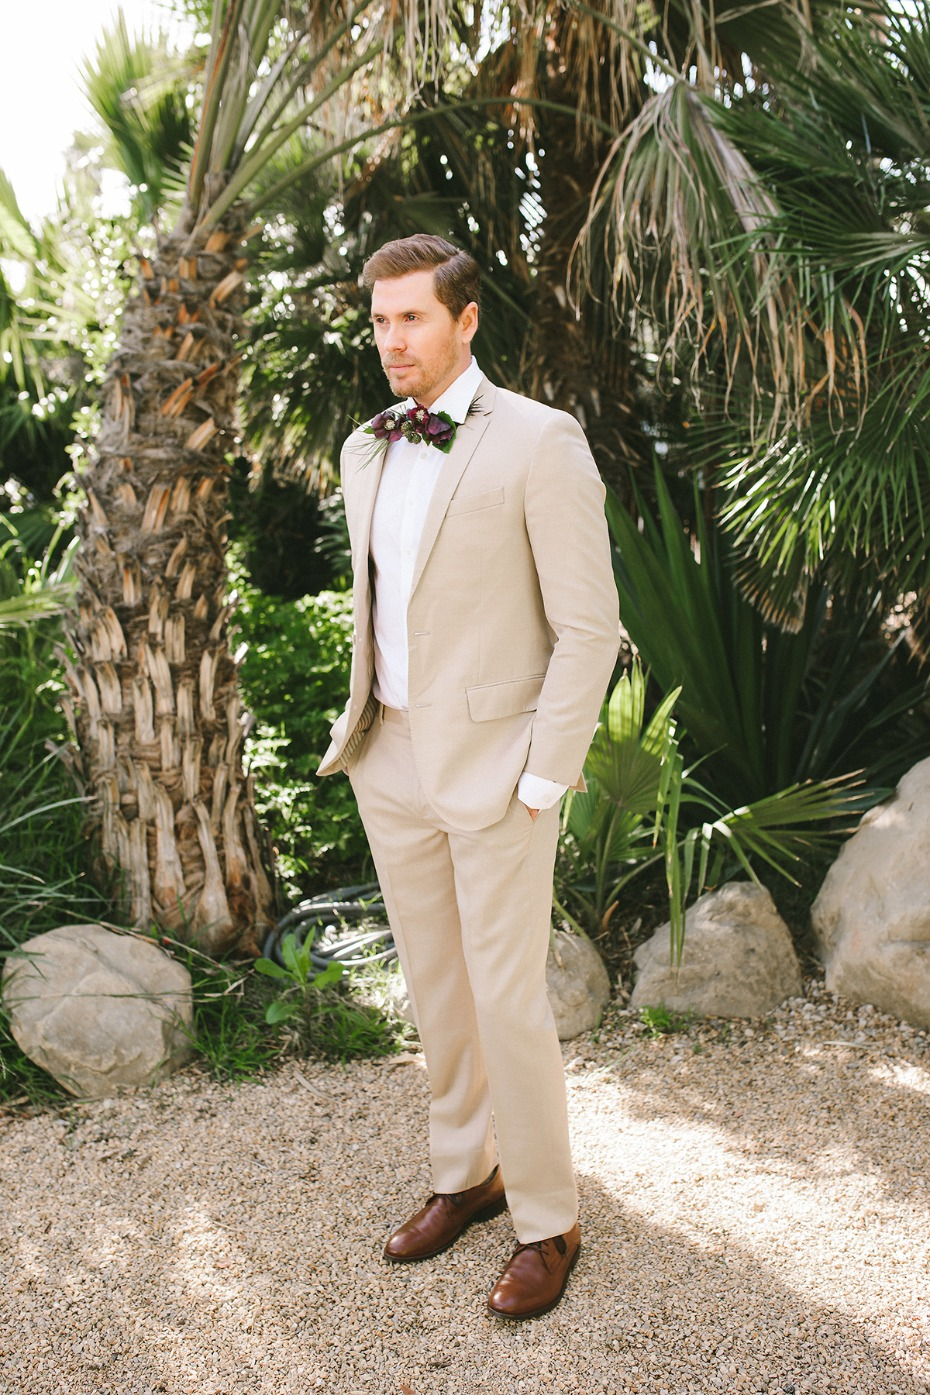 groom in sand colored tuxedo and white shirt